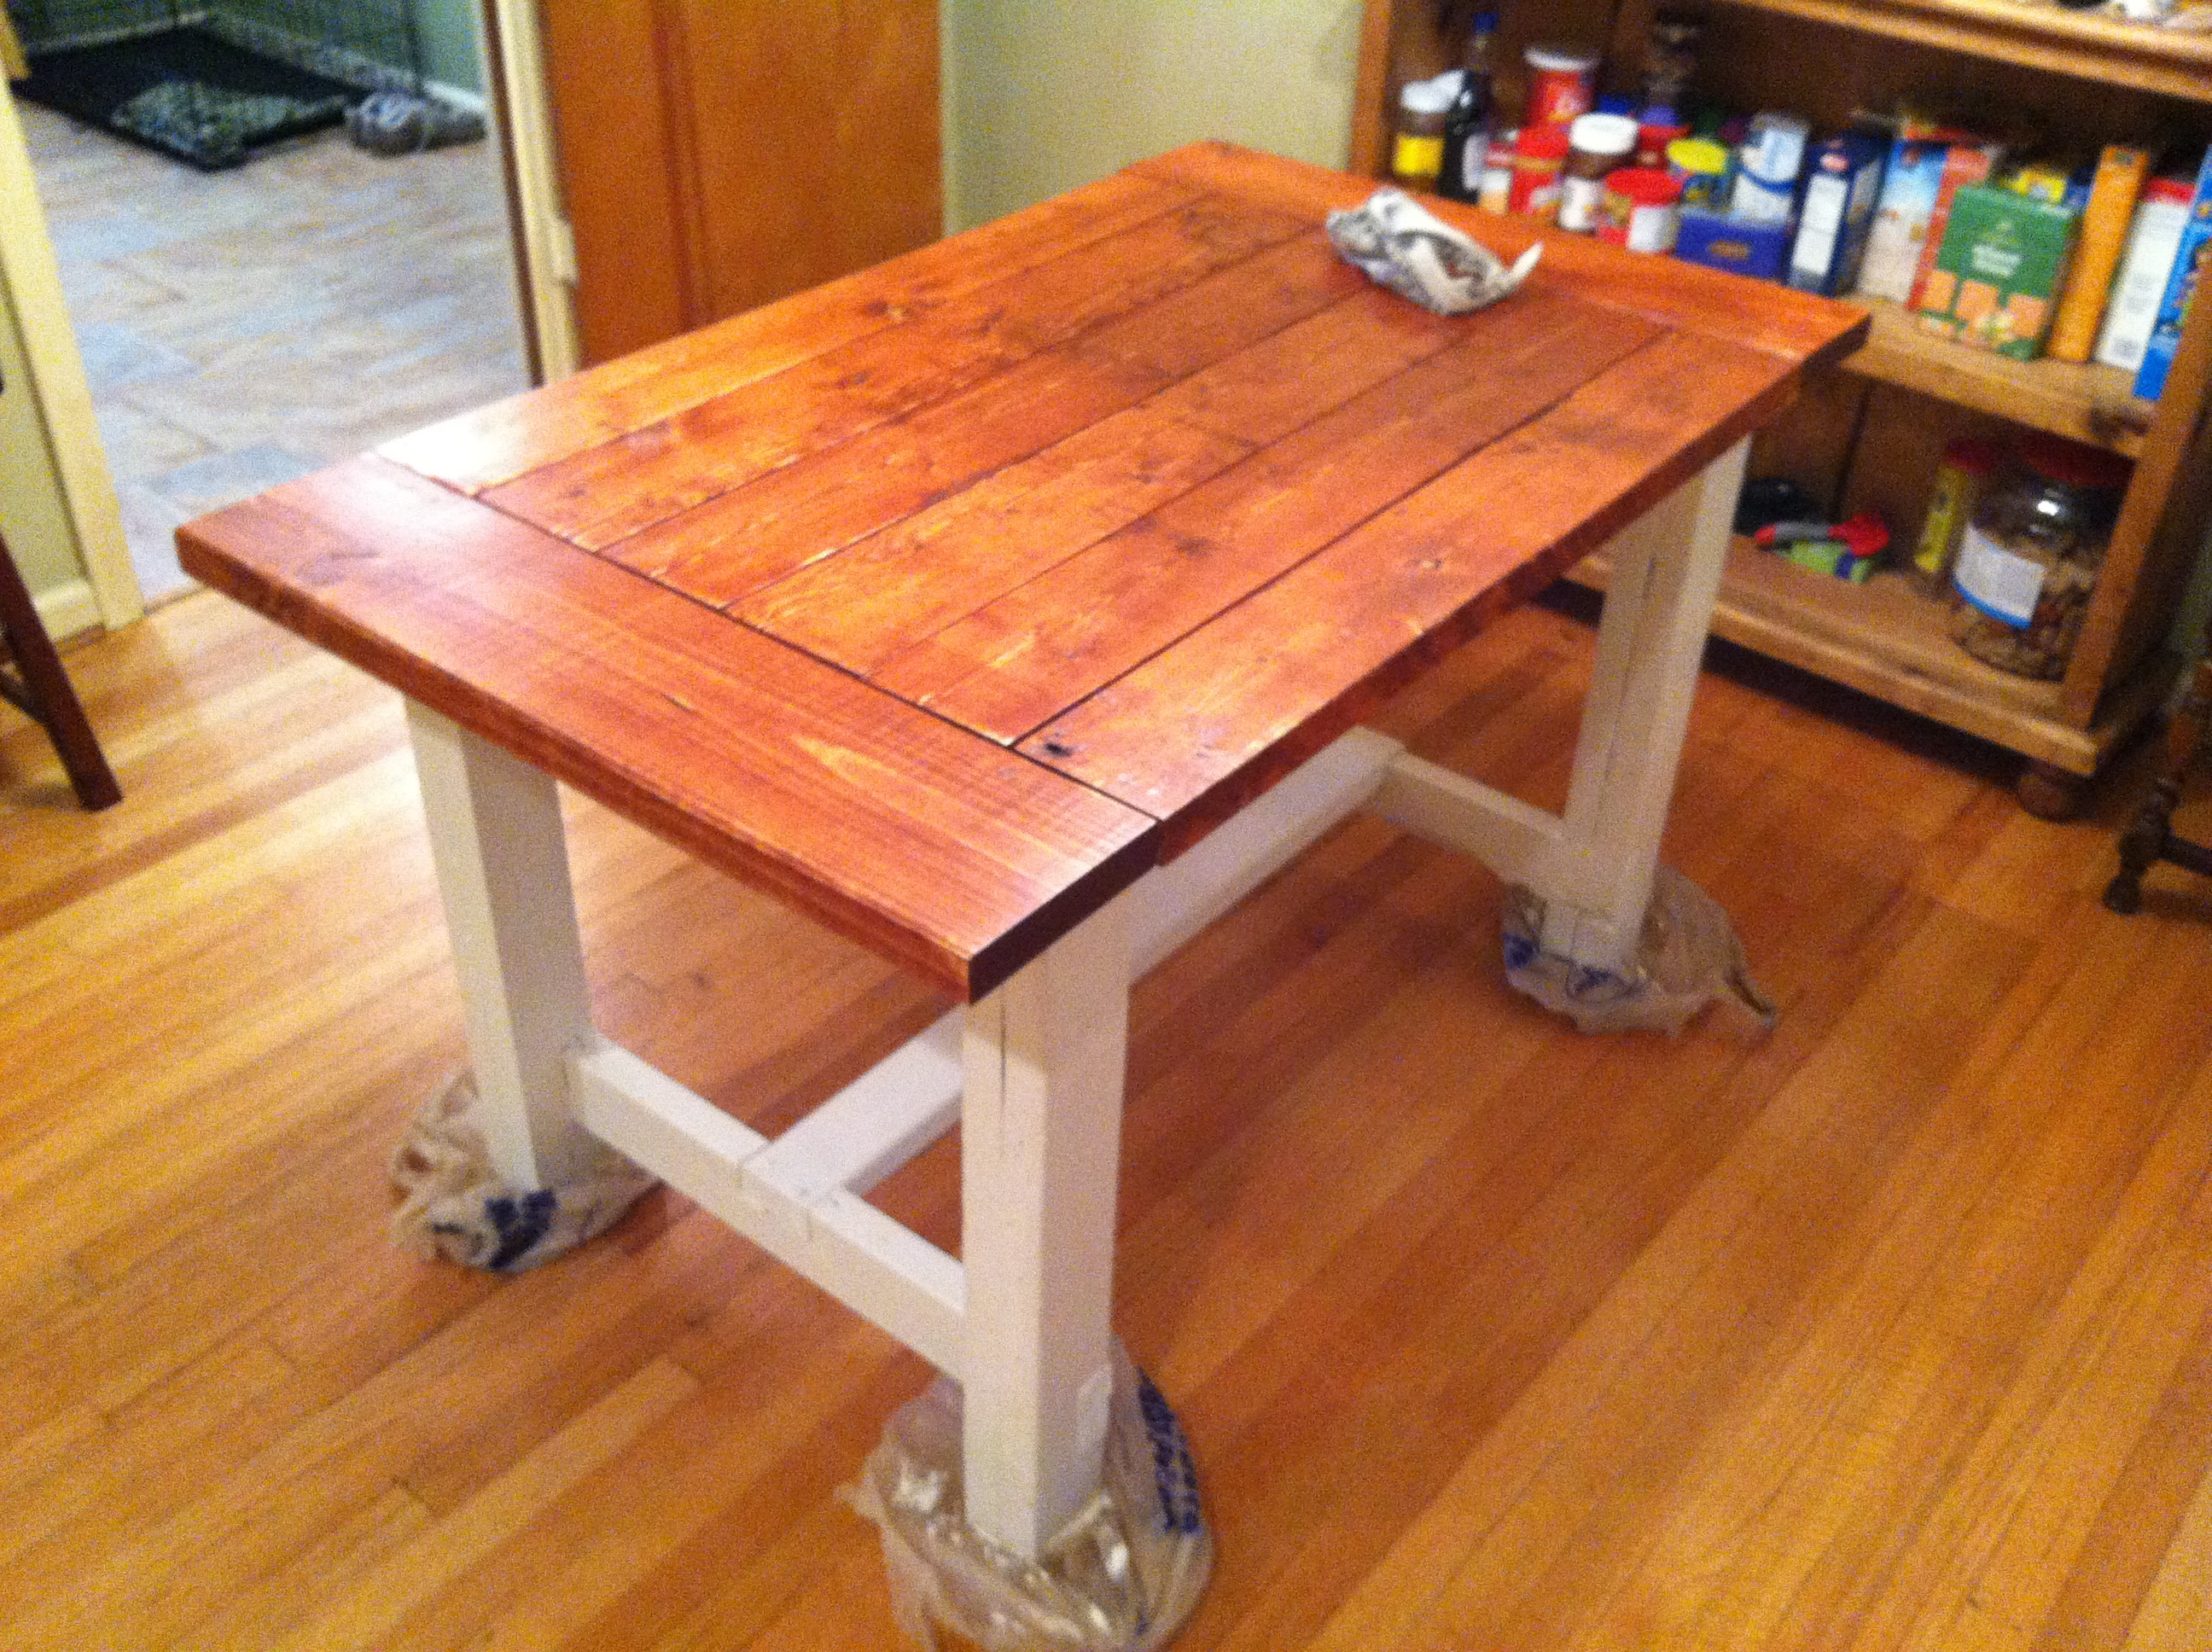 Best ideas about DIY Dining Room Table Plans . Save or Pin Ana White Now.